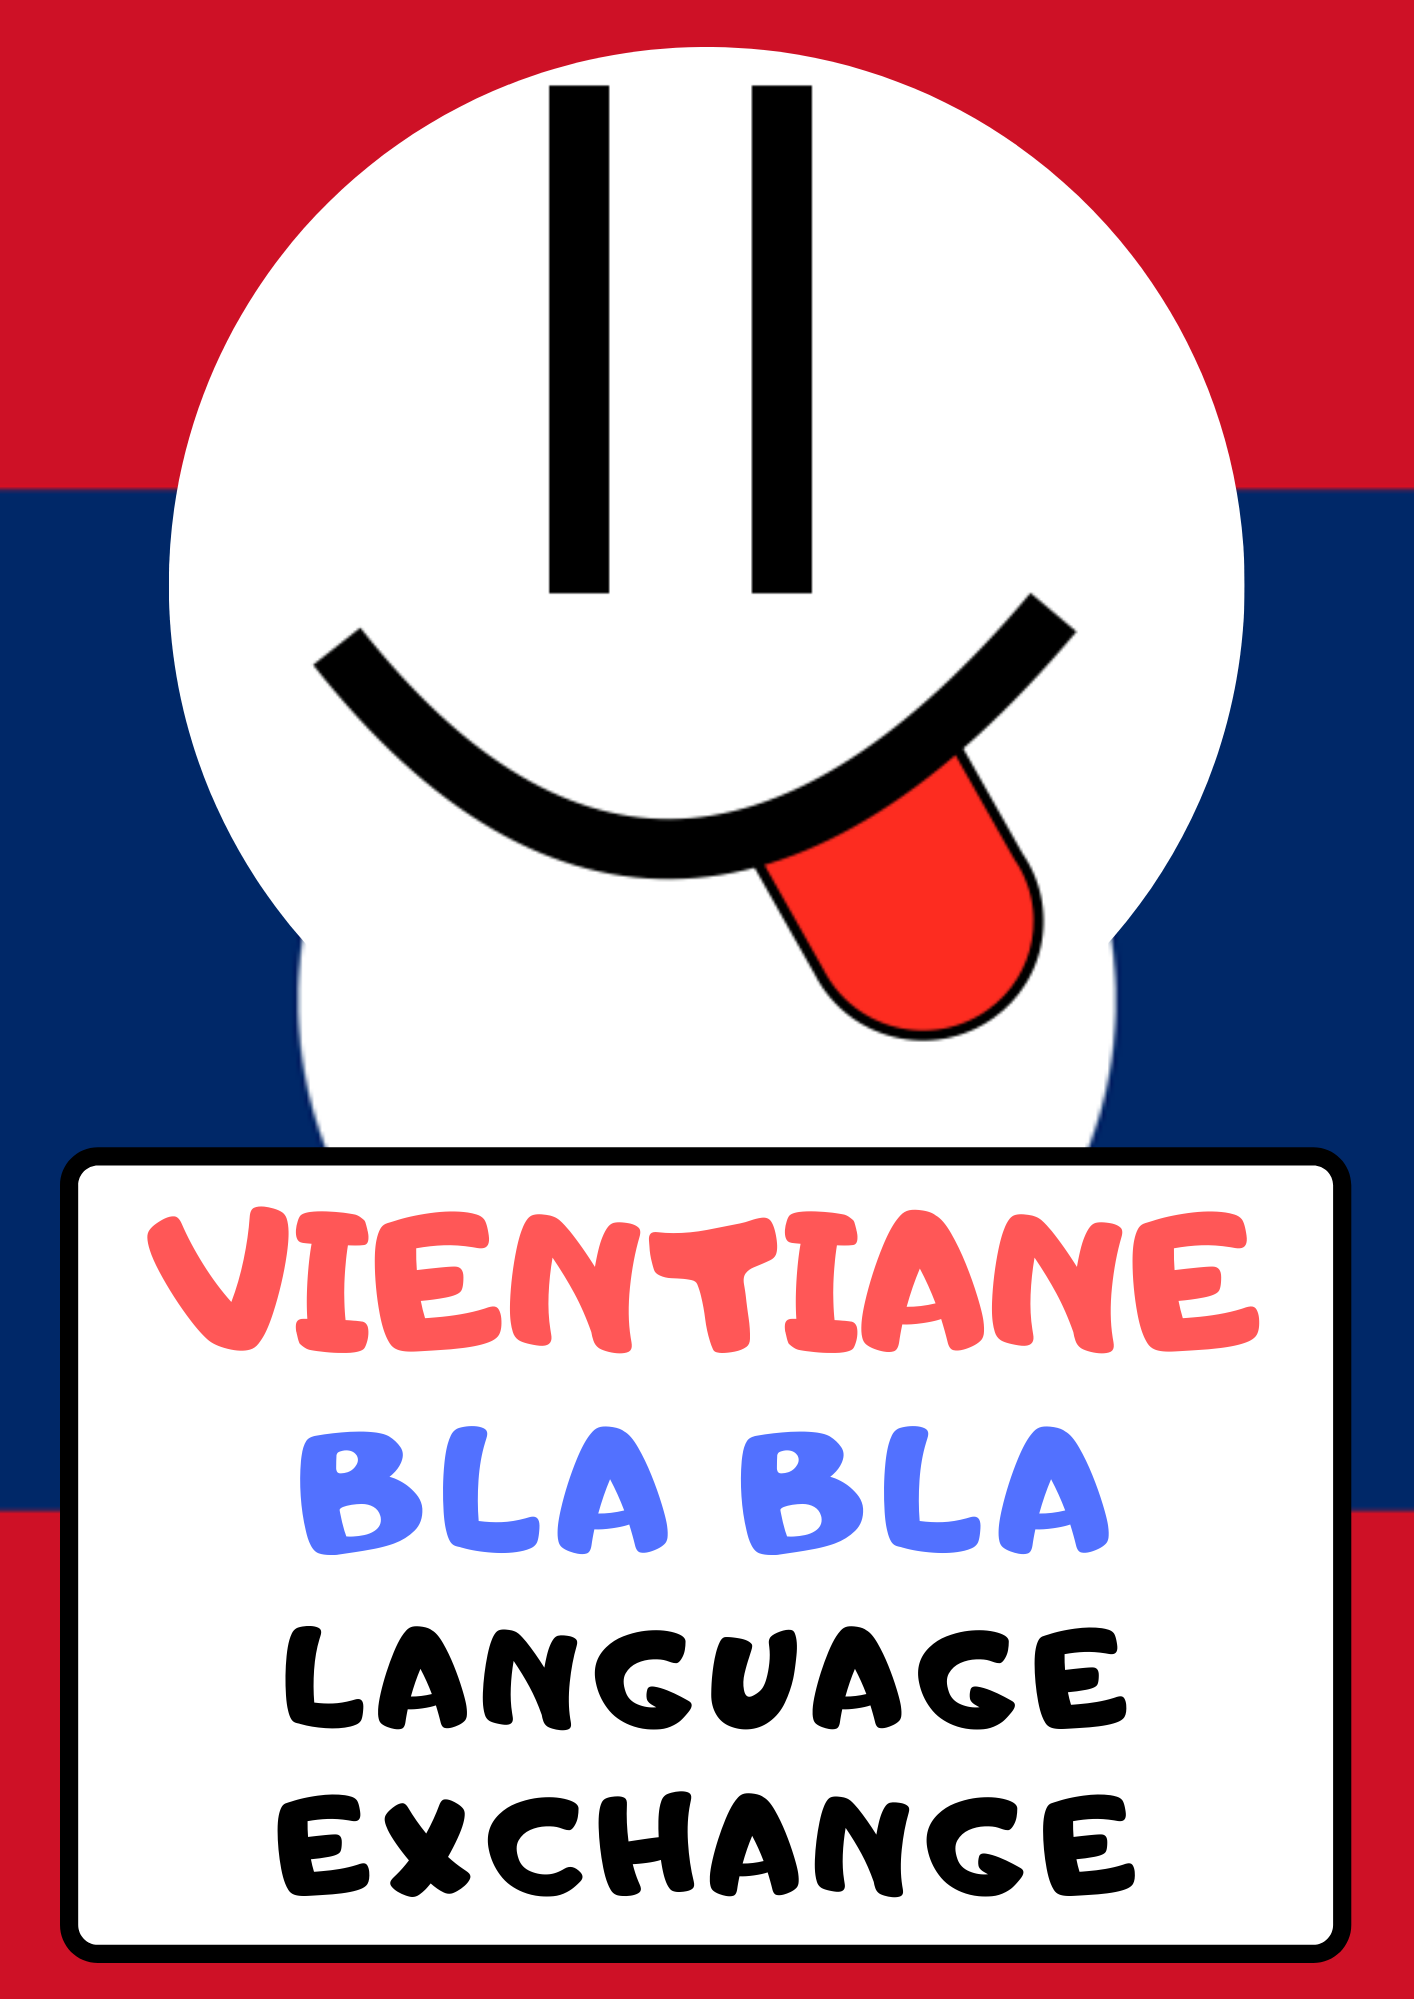 Vientiane BlaBla Language Exchange